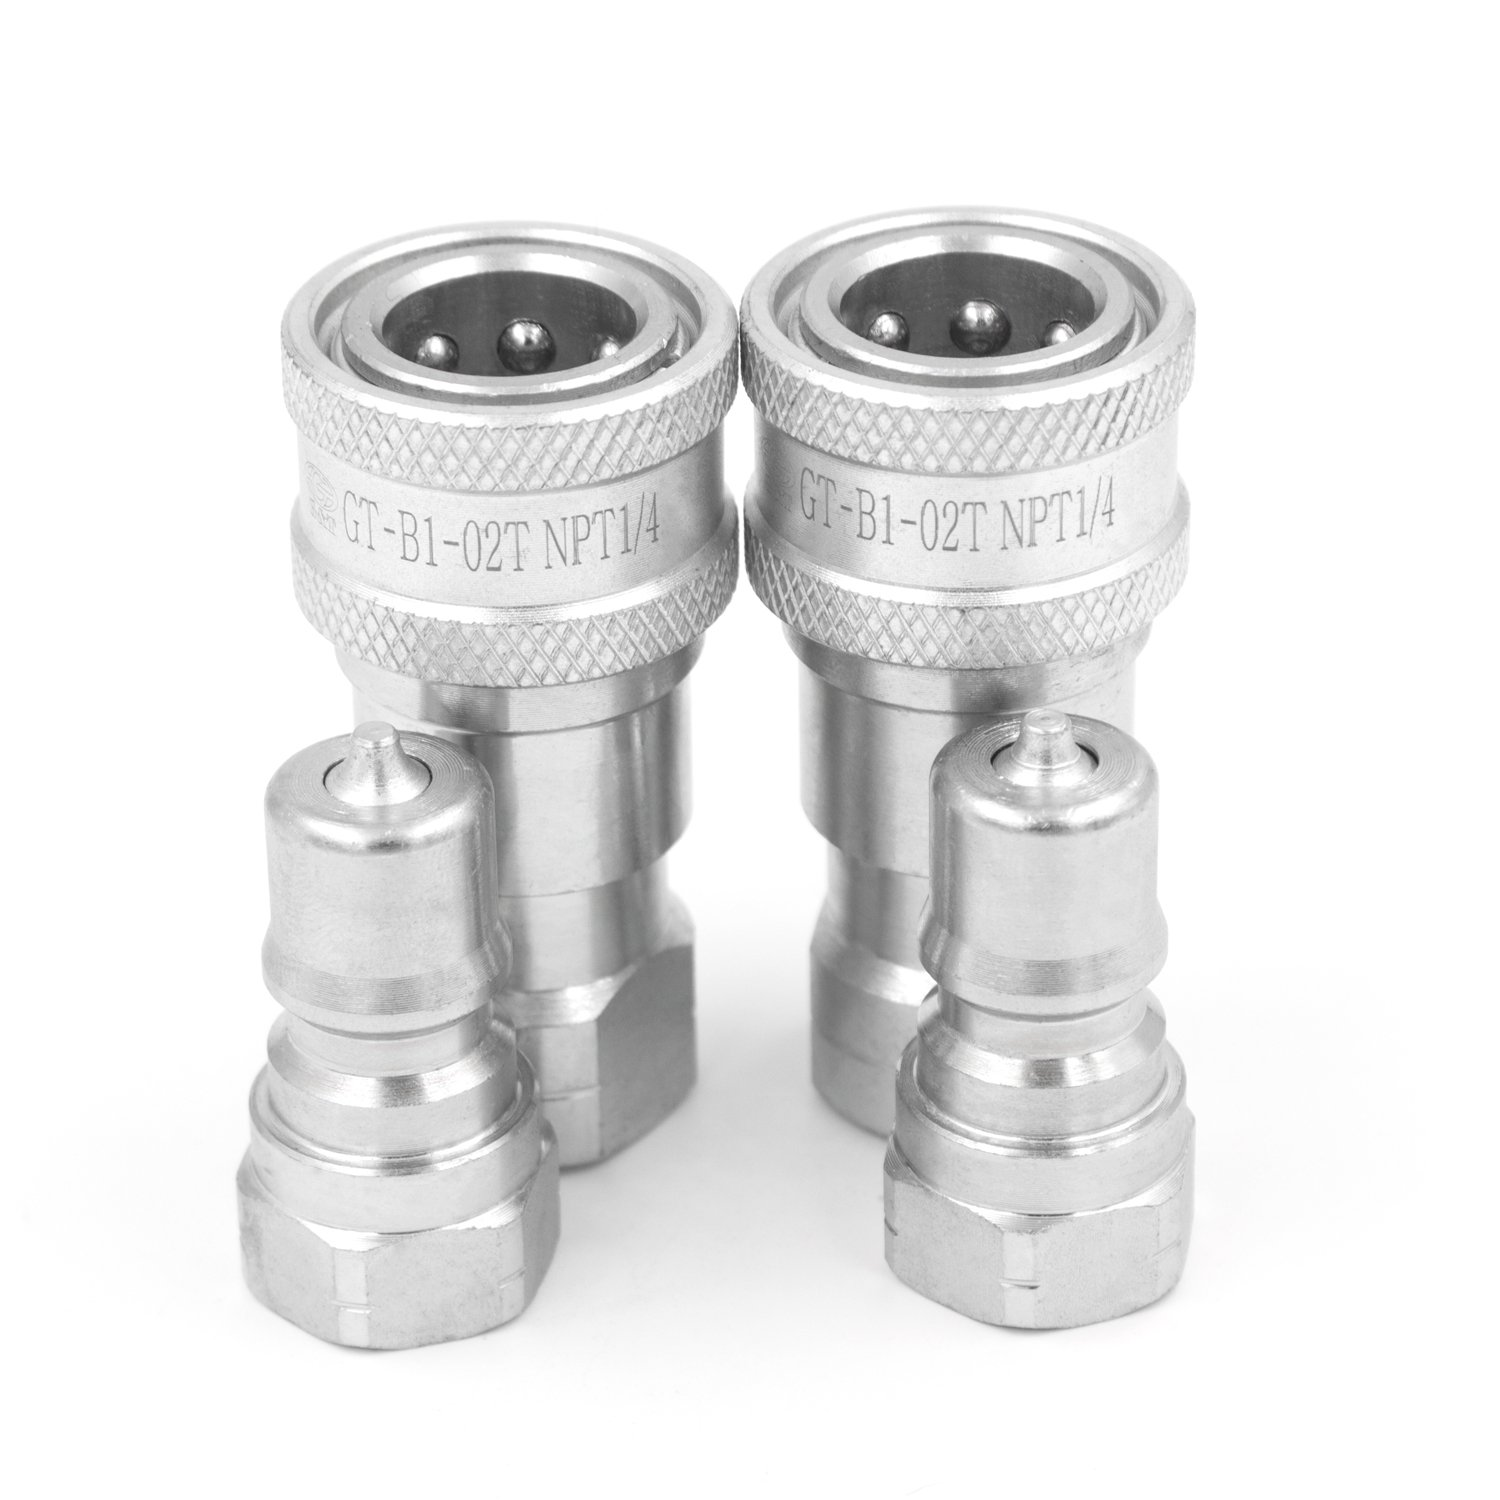 2 Sets 1//4 NPT Thread ISO-B Hydraulic Quick Disconnect Coupler Tractor Quick Coupling with Dust Caps Gute